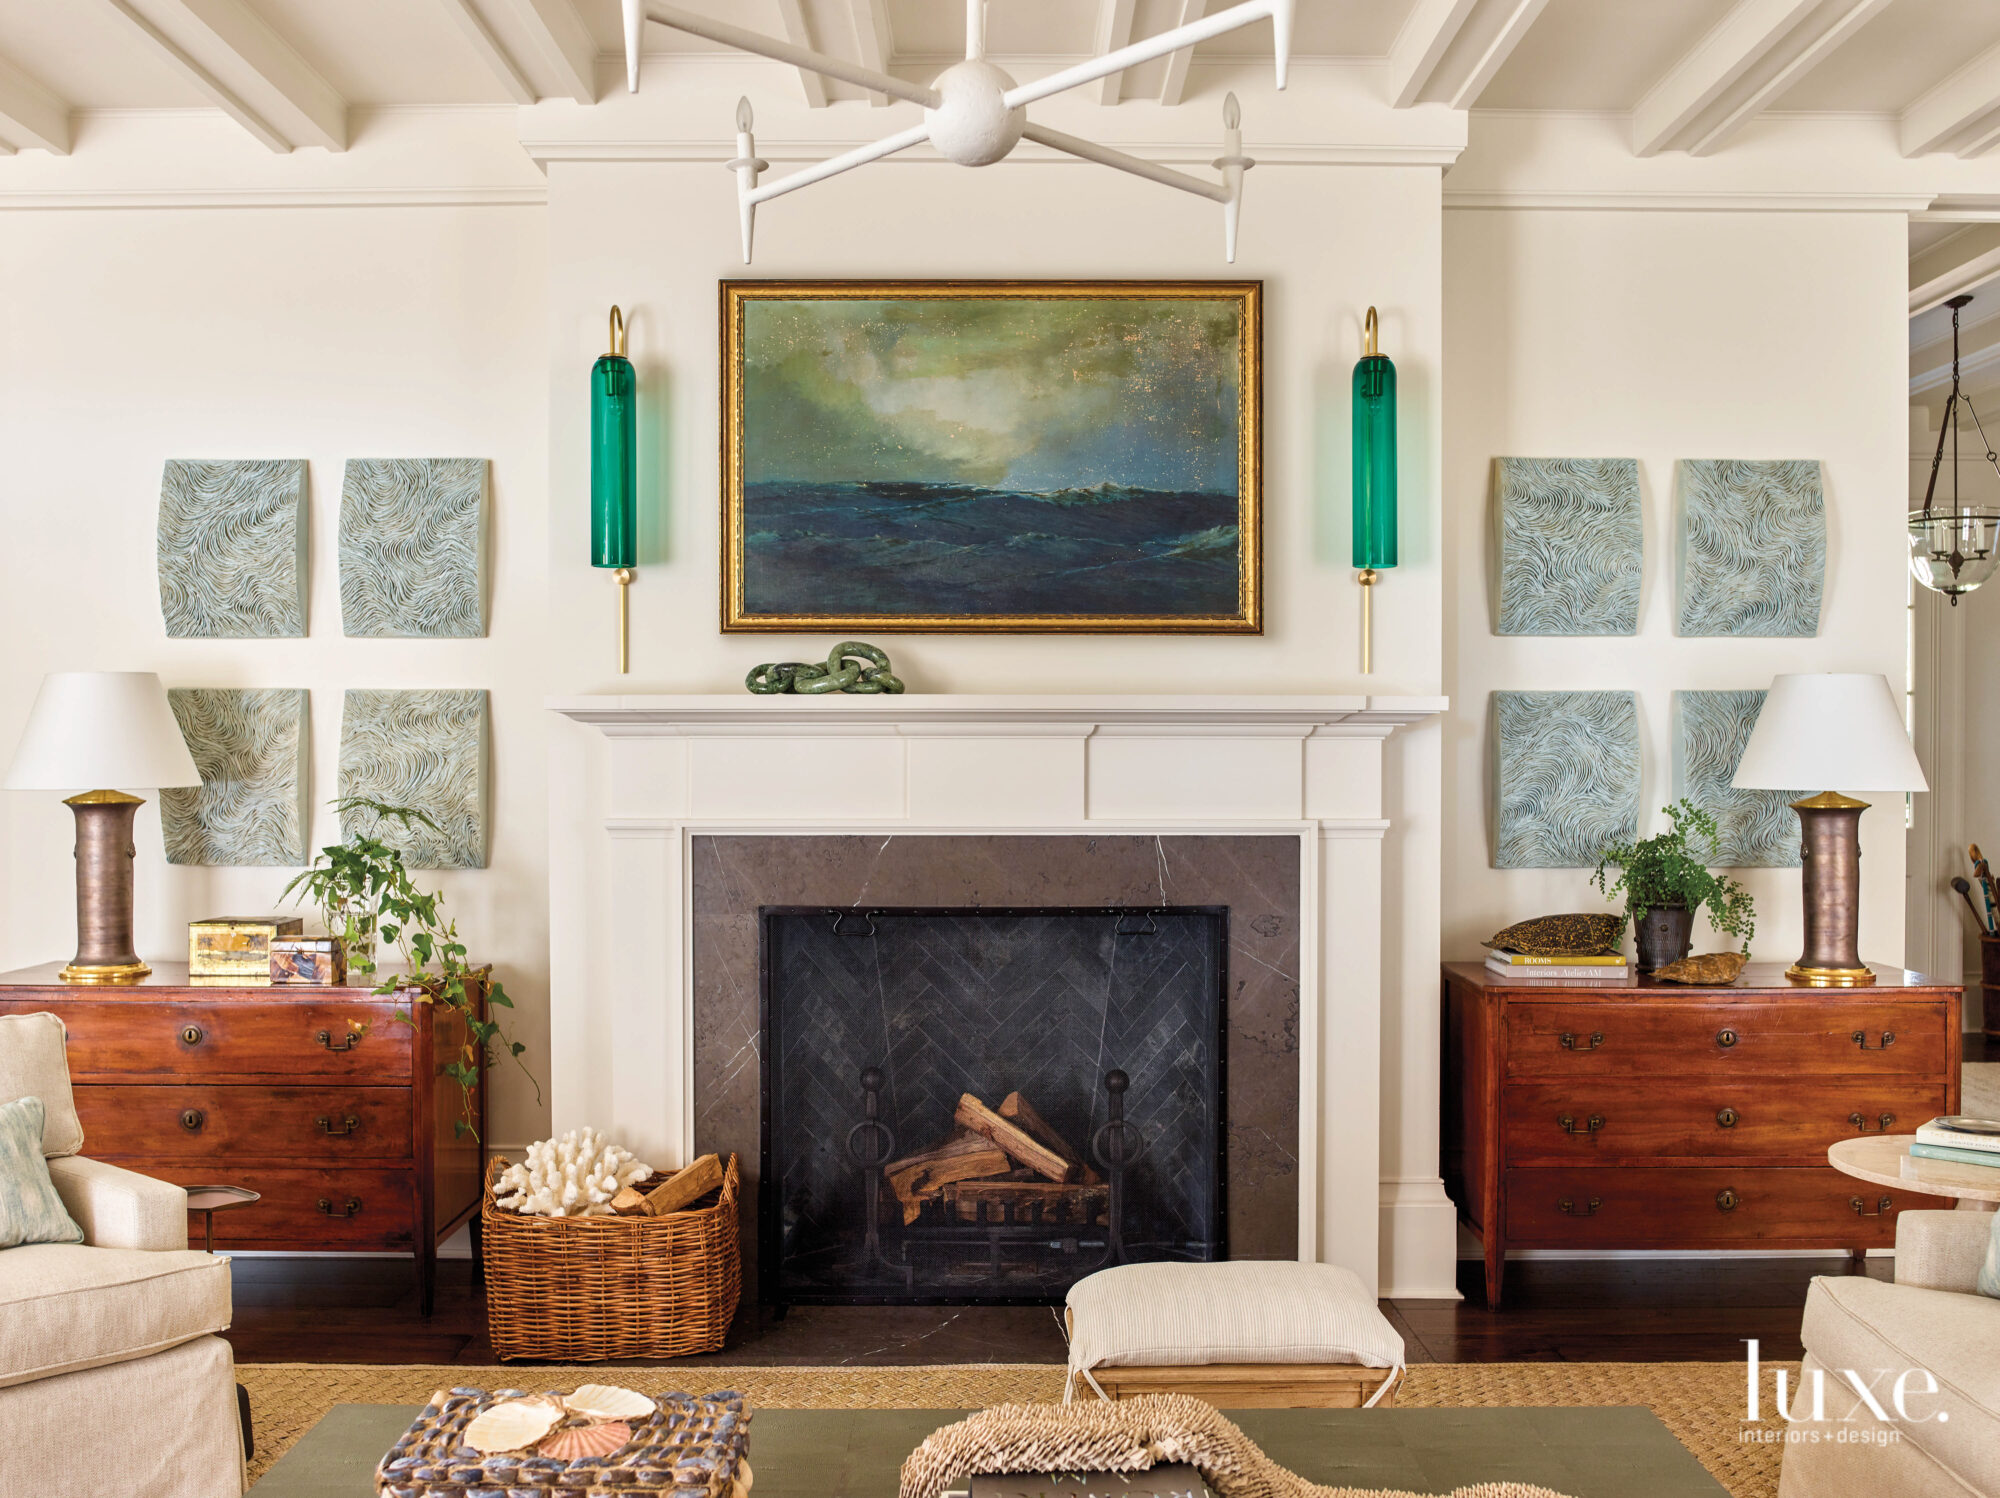 Fireplace with green sconces and...